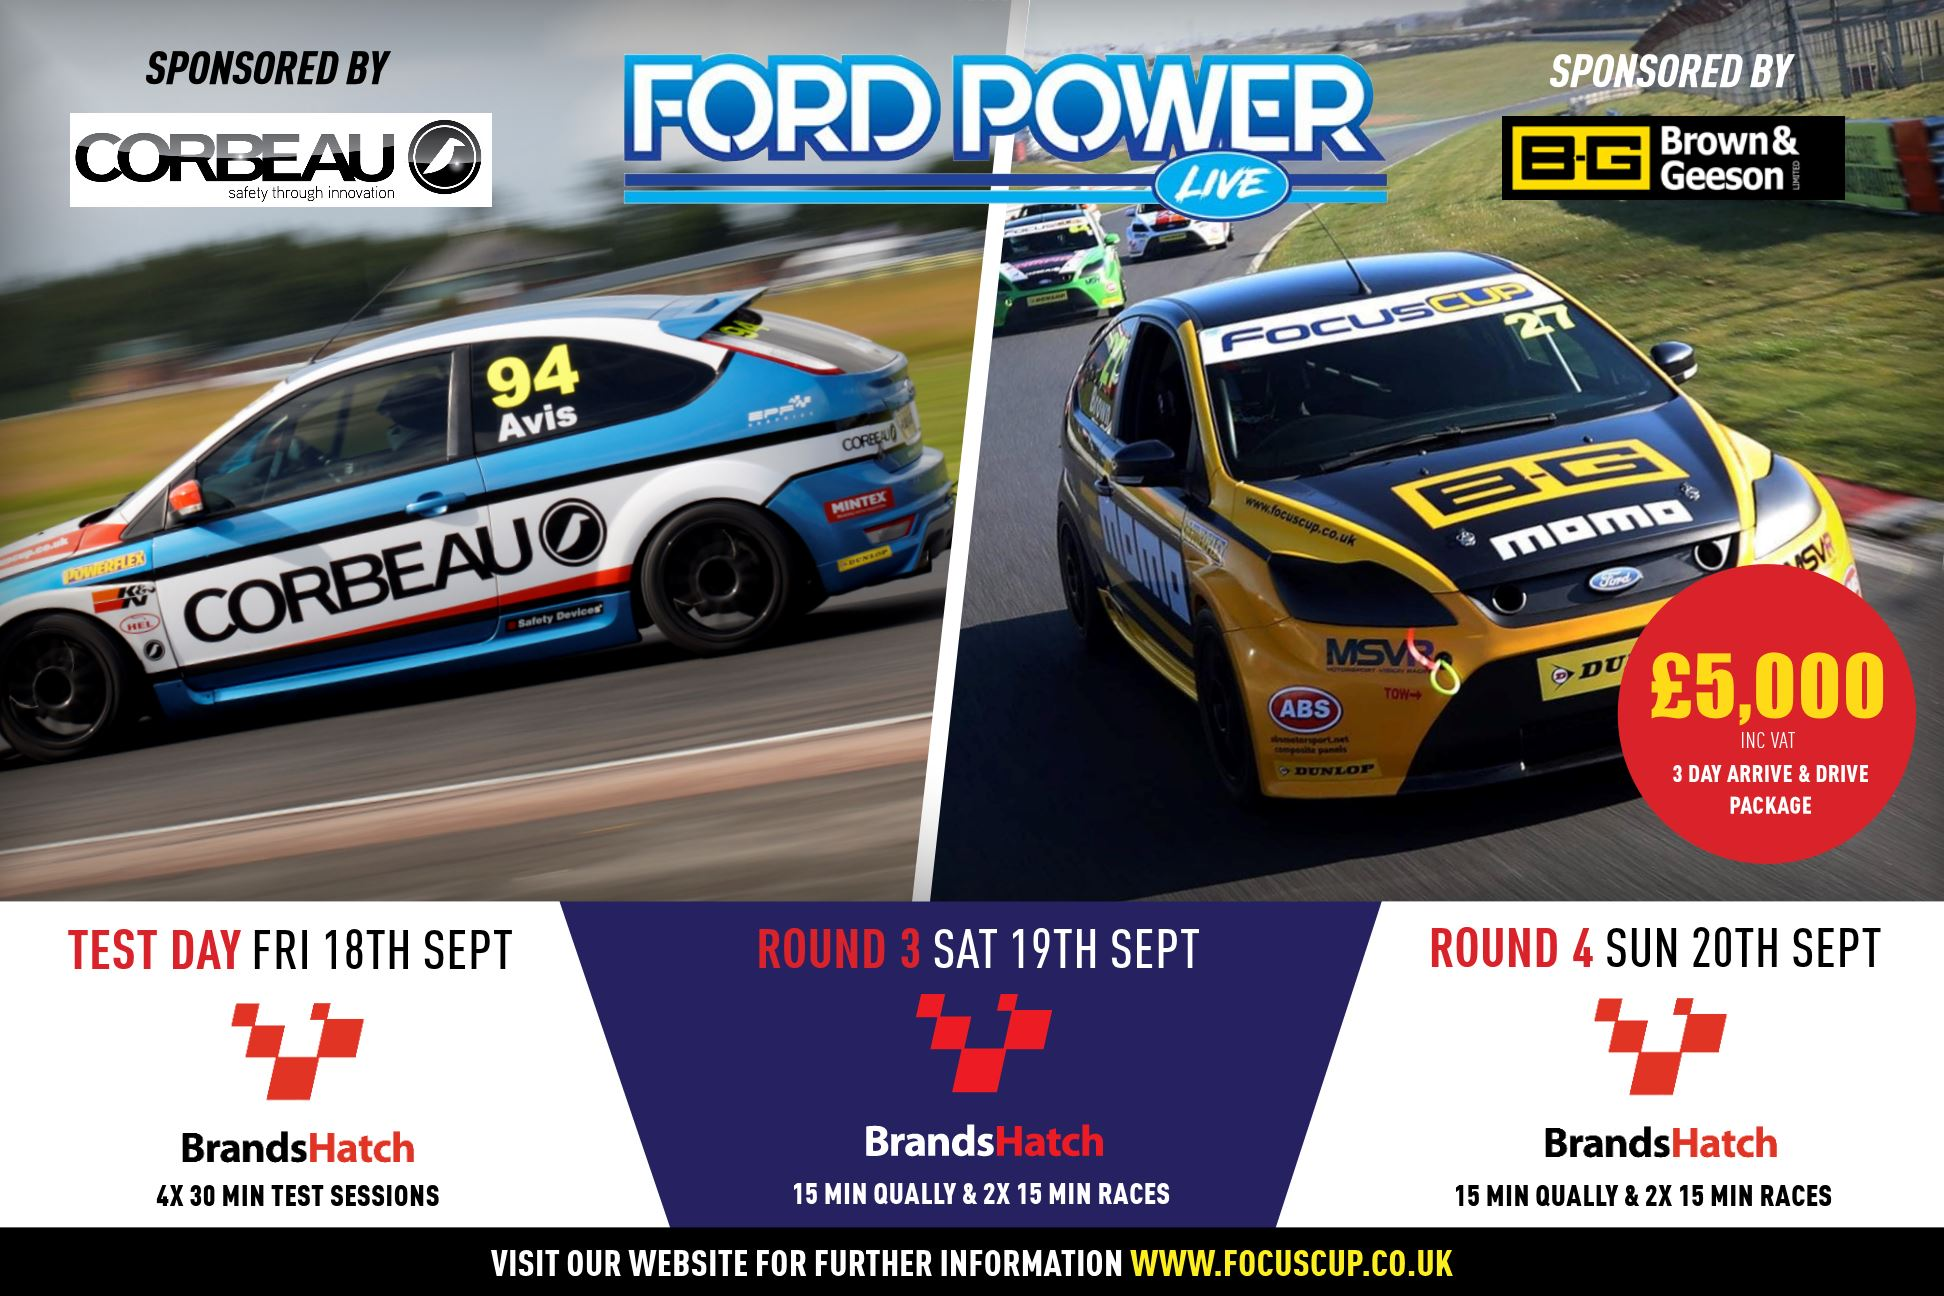 Ford Power Live Event Round 3 & 4